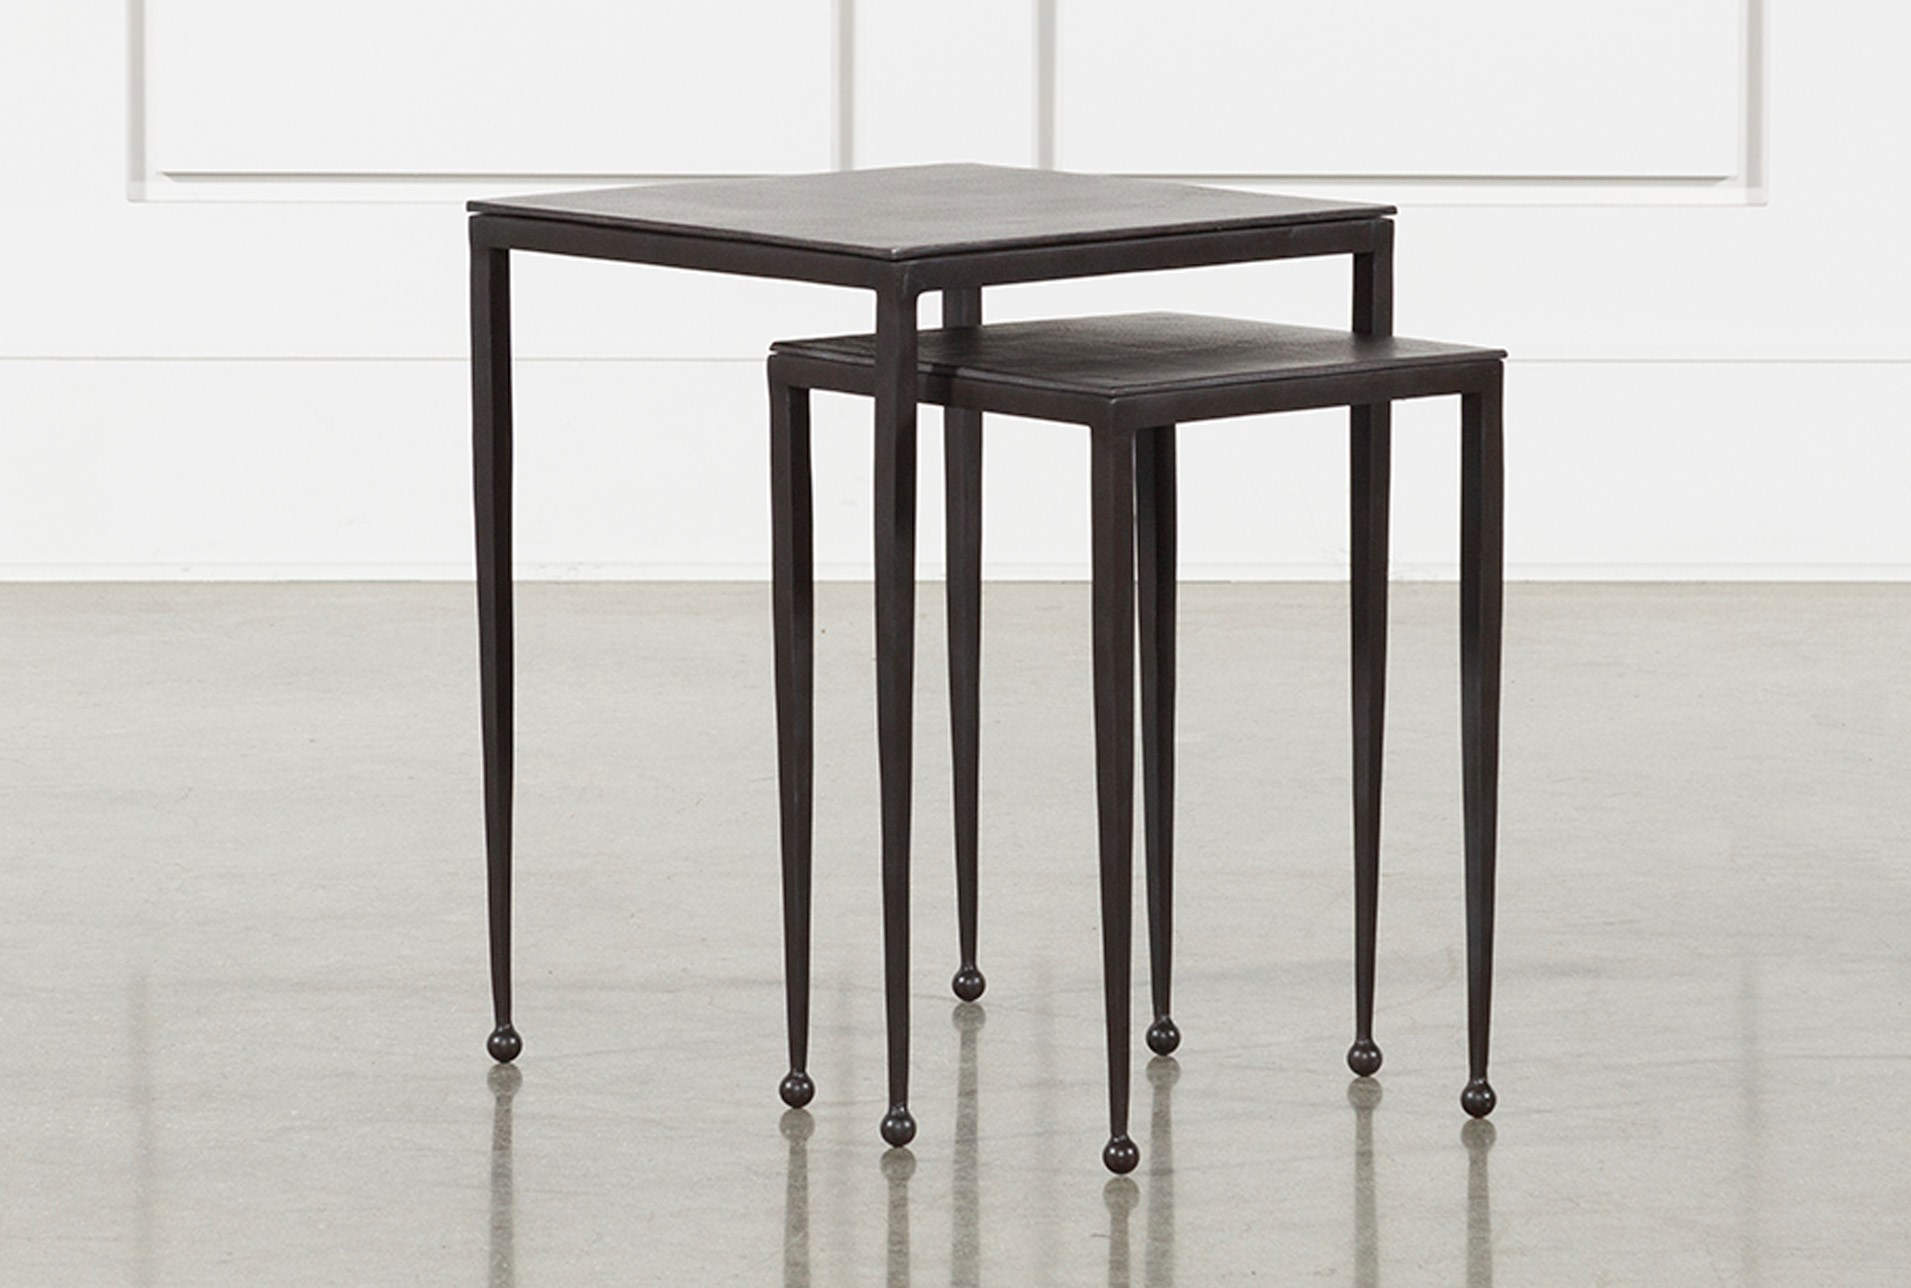 Dalston nesting end tables living spaces dalston nesting end tables qty 1 has been successfully added to your cart watchthetrailerfo